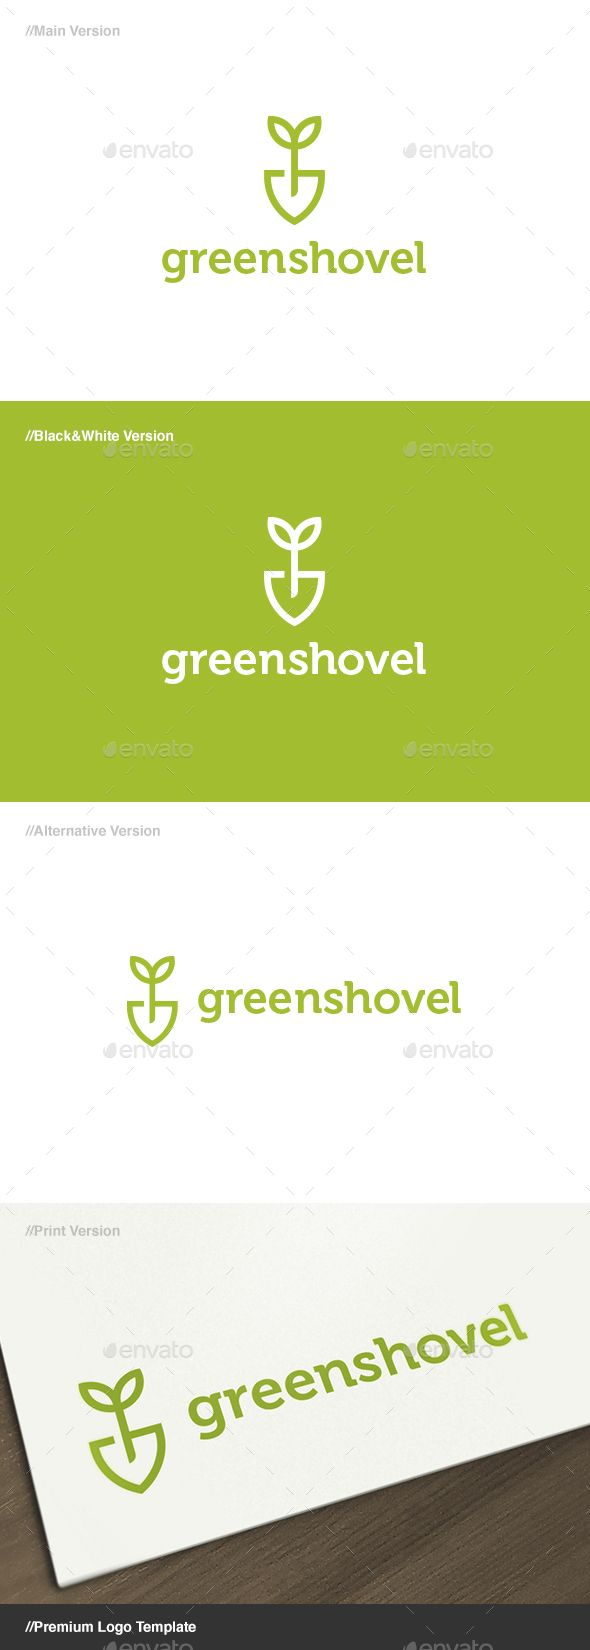 Green Shovel Logo Template Vector EPS, AI Illustrator #logotype Download here: http://graphicriver.net/item/green-shovel-logo/15736097?ref=ksioks